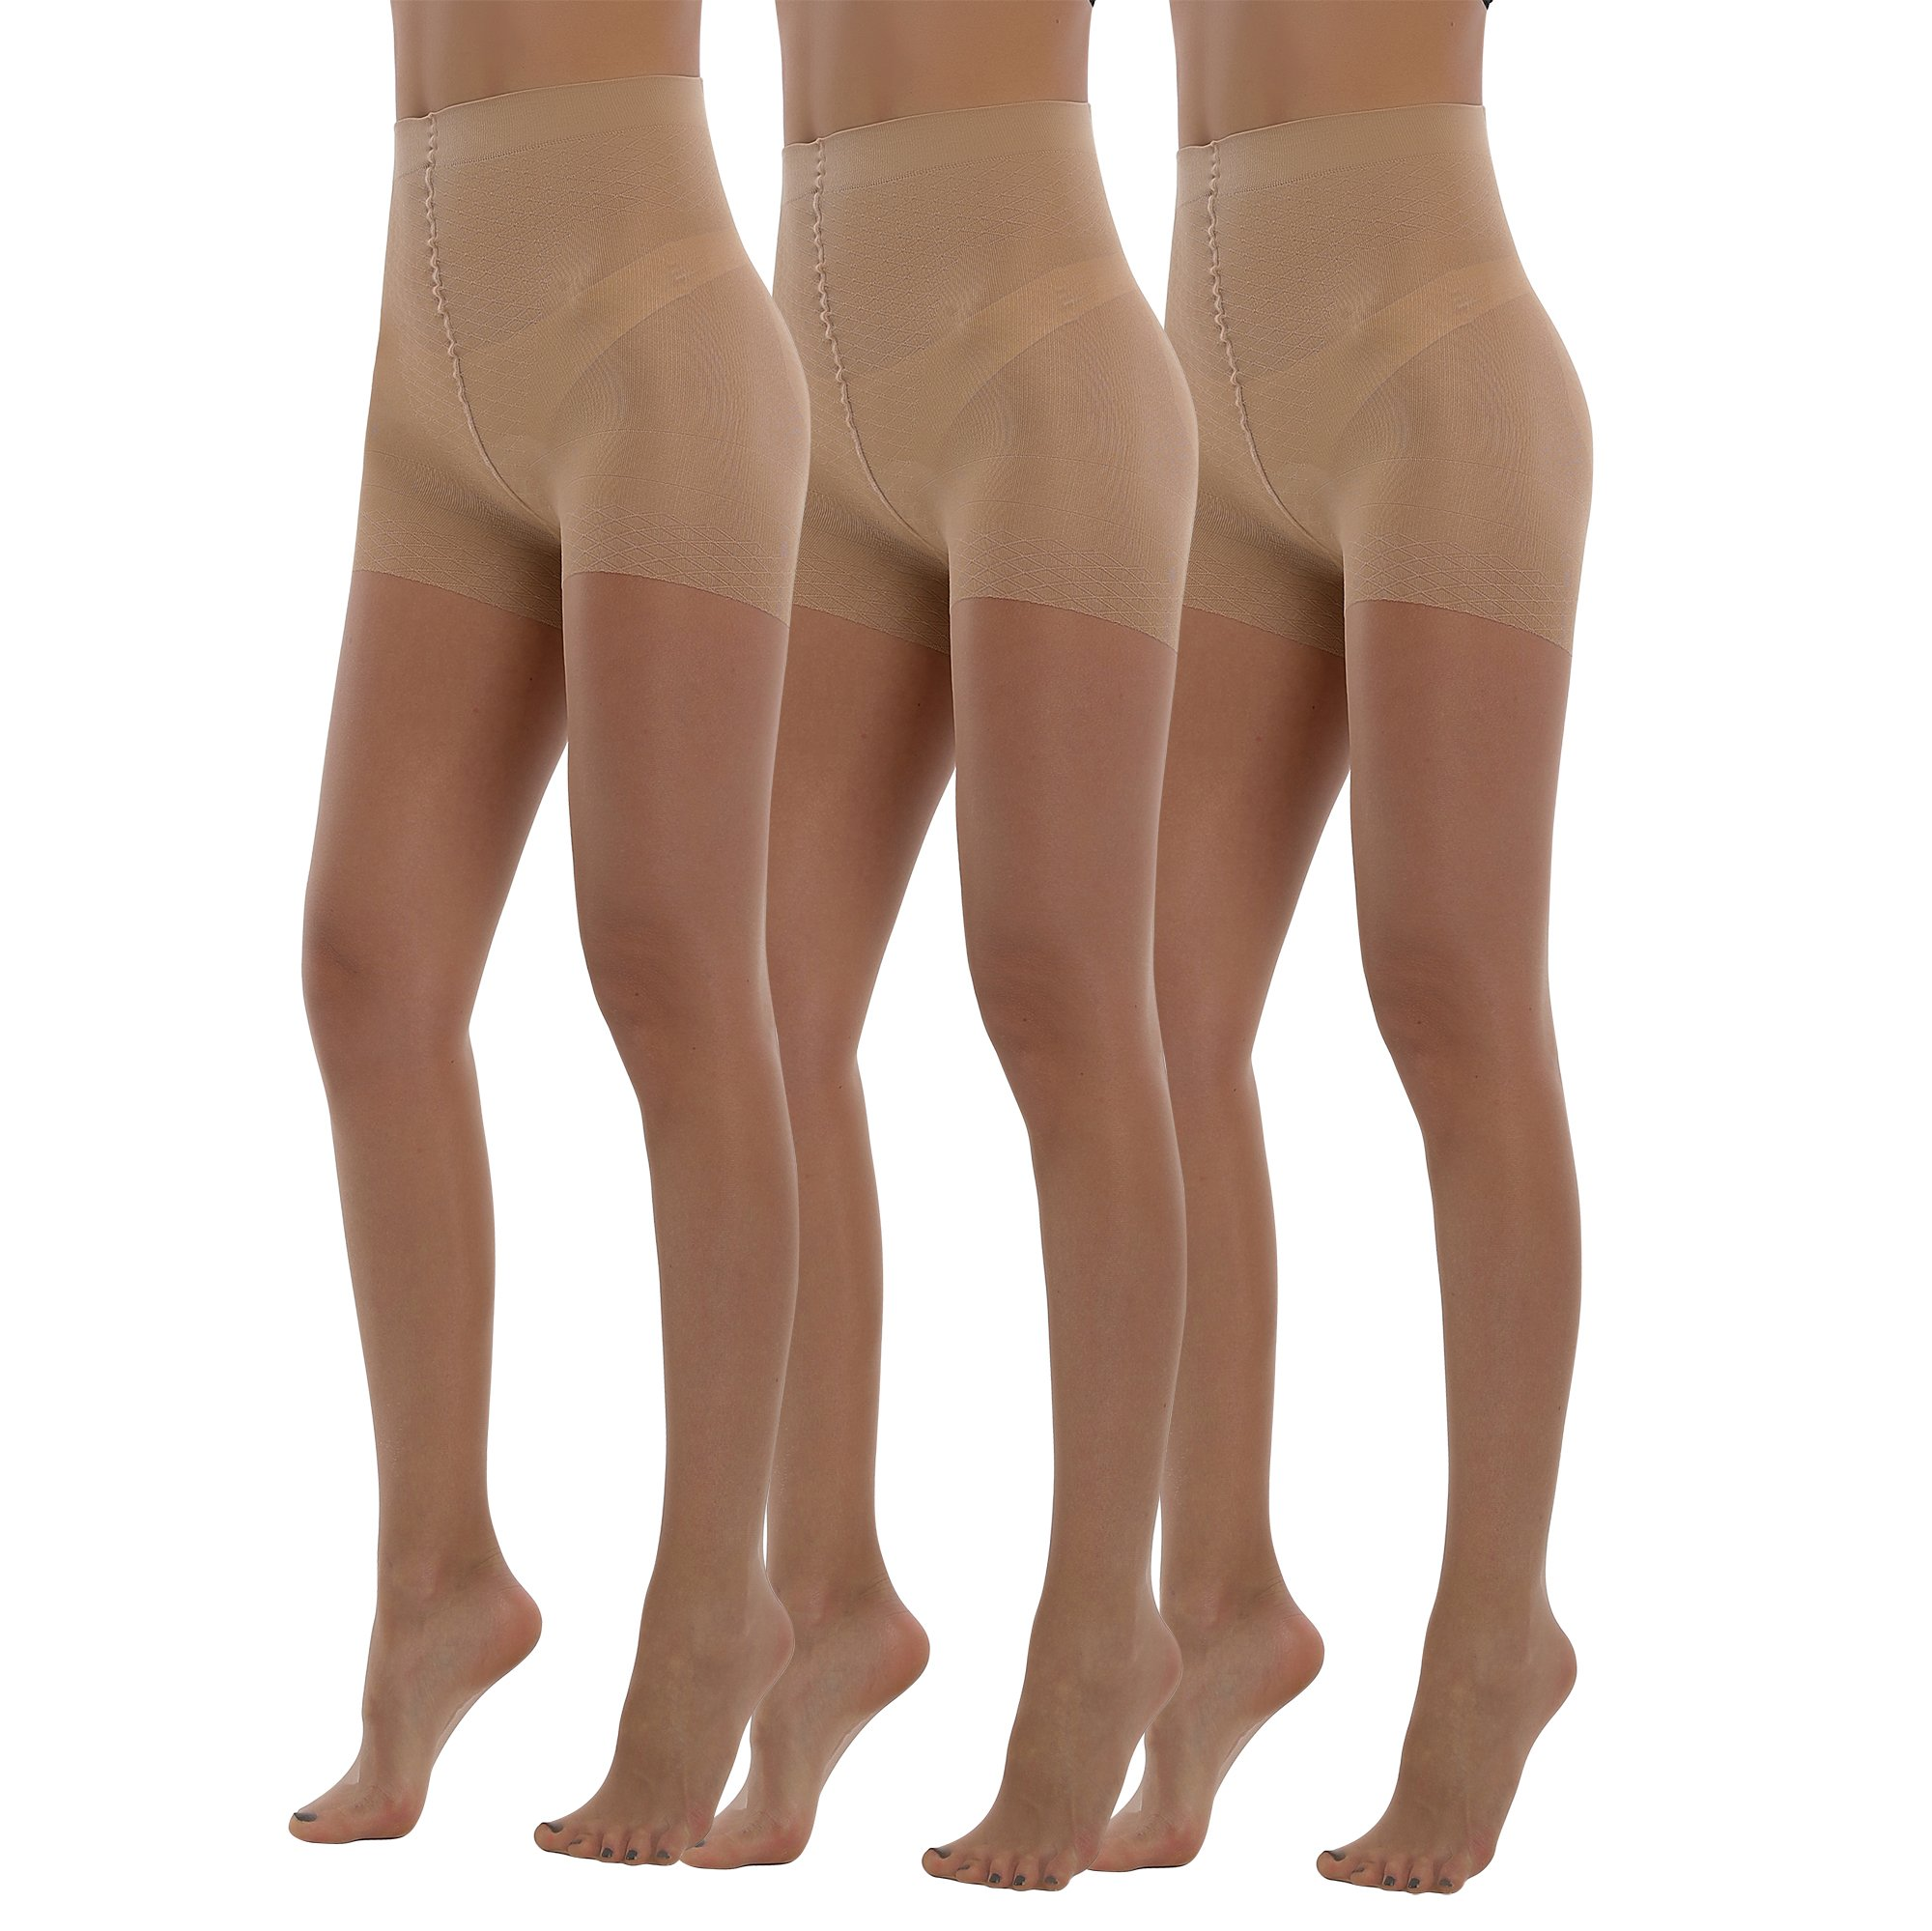 BONAS Bodyshaper Pantyhose 3Pack High Waisted Shock Up Silky Stockings Control Top Tights